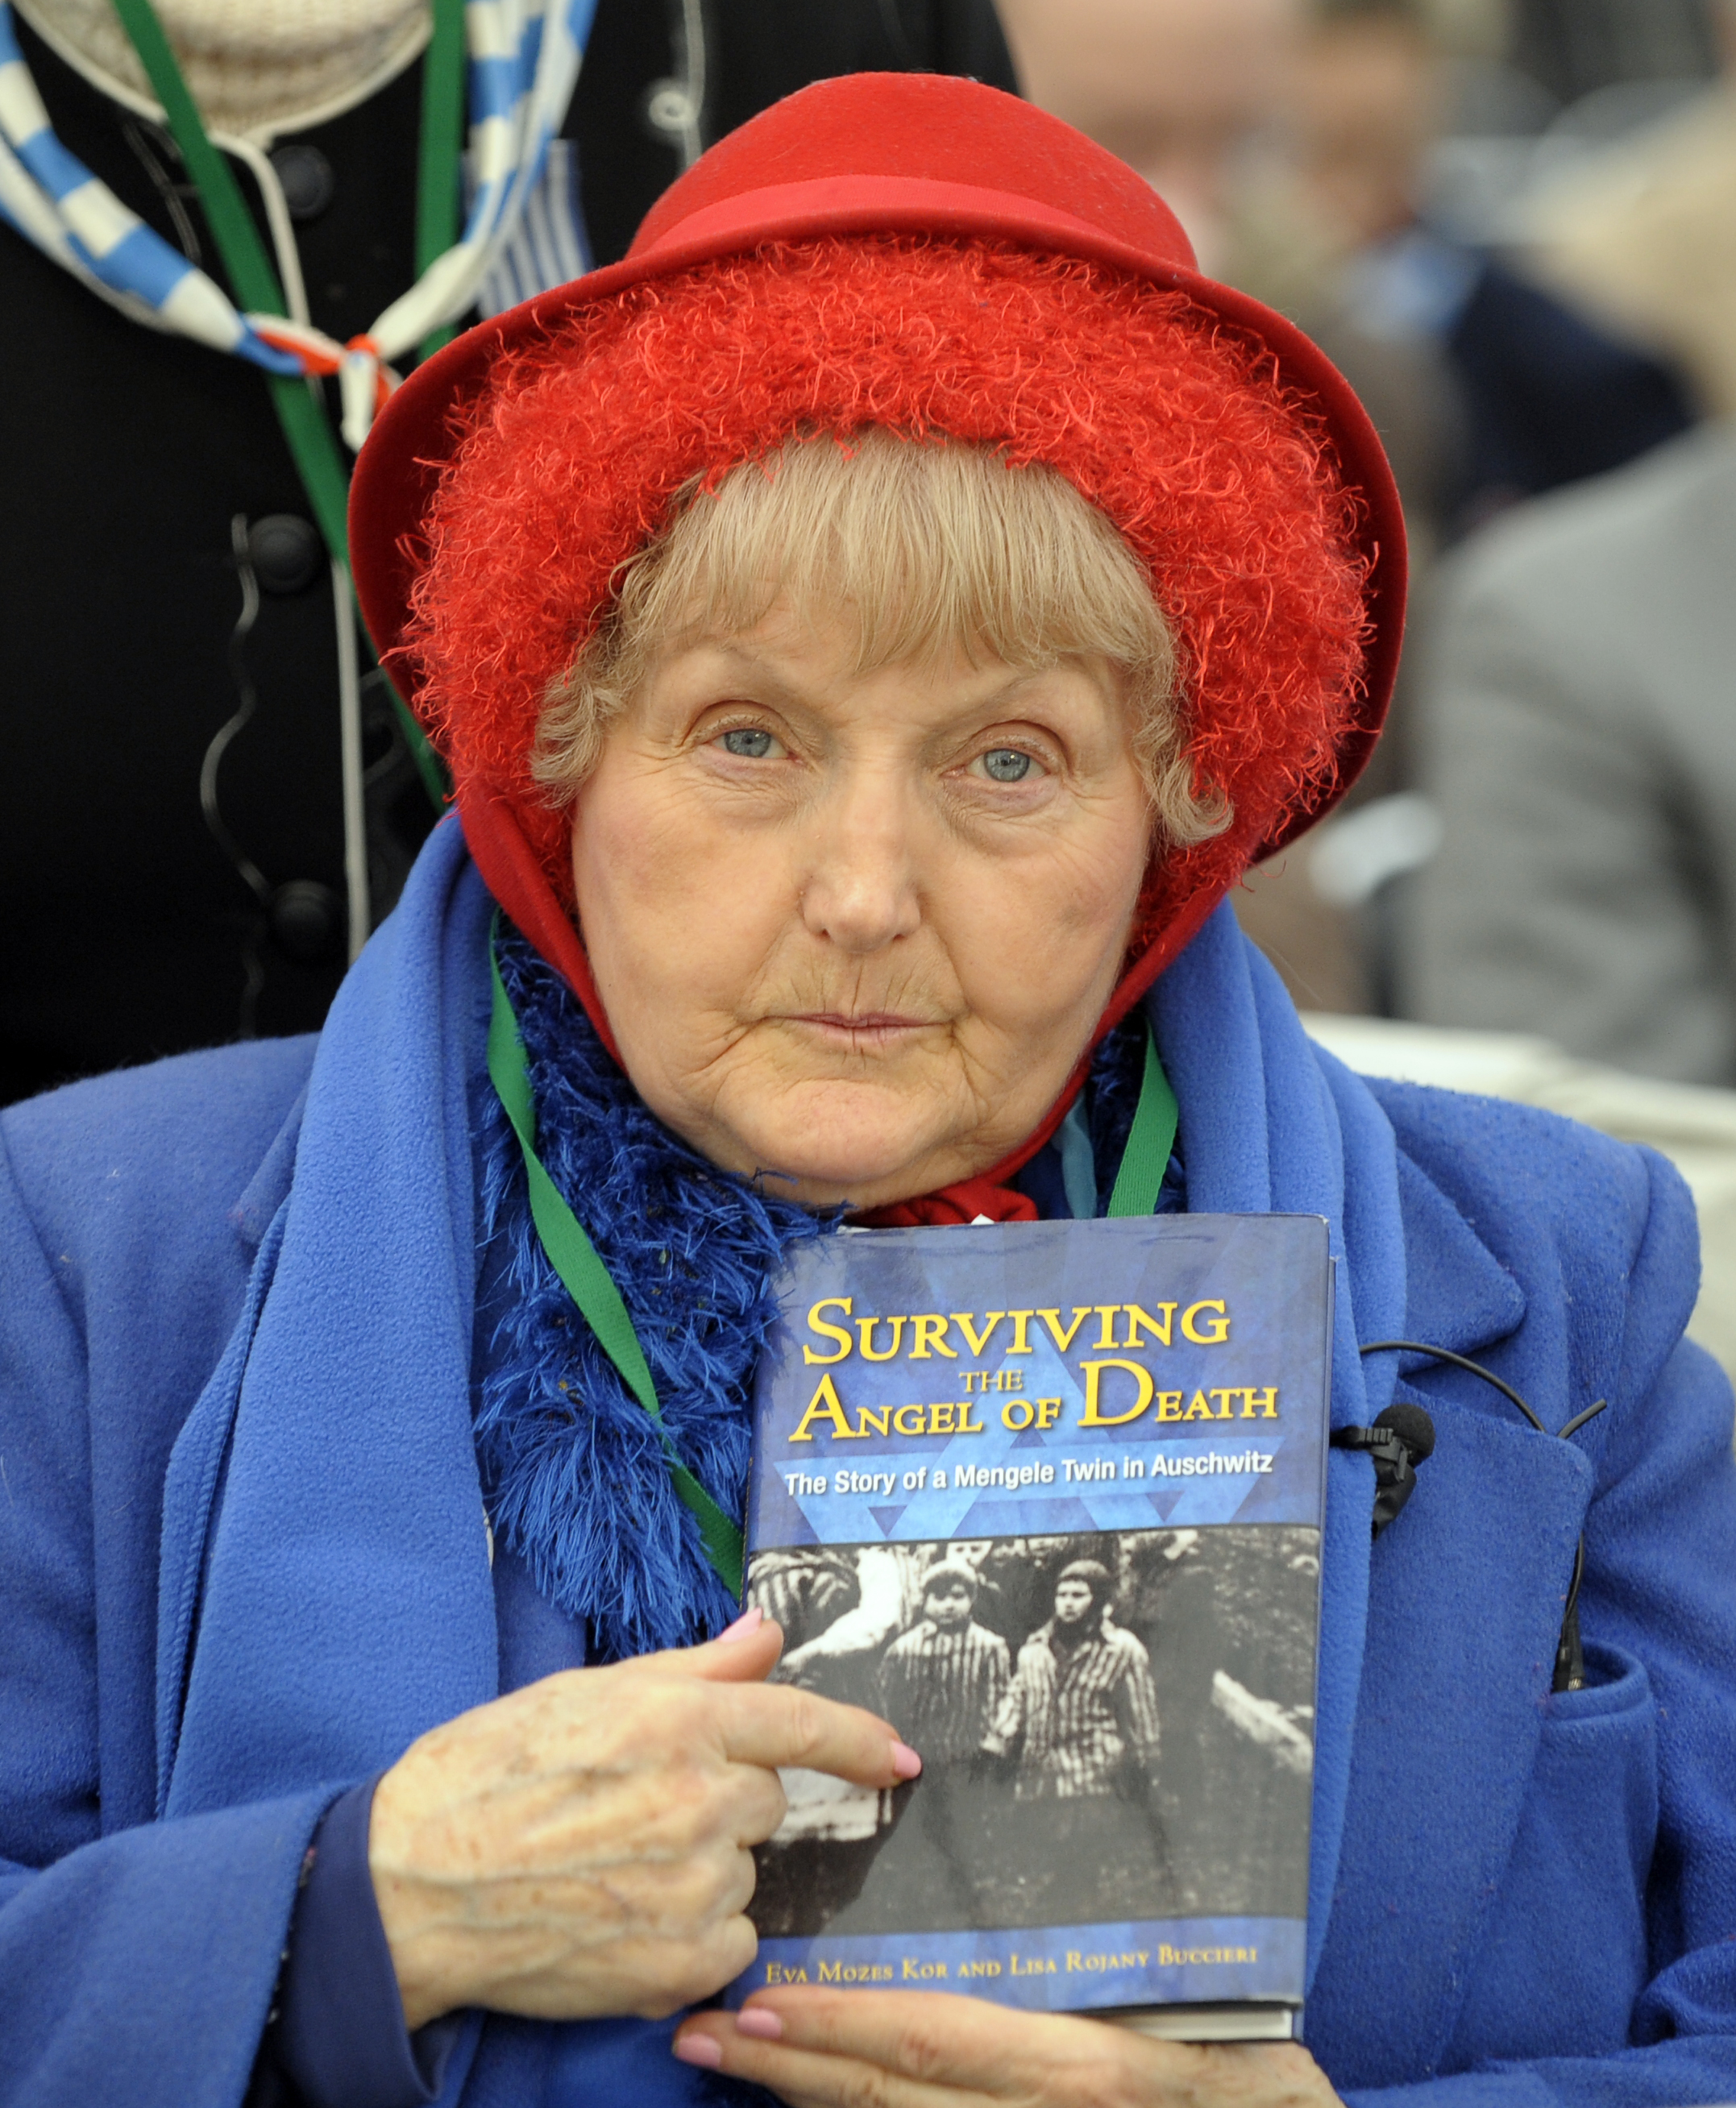 Eva Mozes Kor, a twin who survived pseudo-medical experiments at the Nazi Auschwitz death camp, on Jan. 27, 2010.